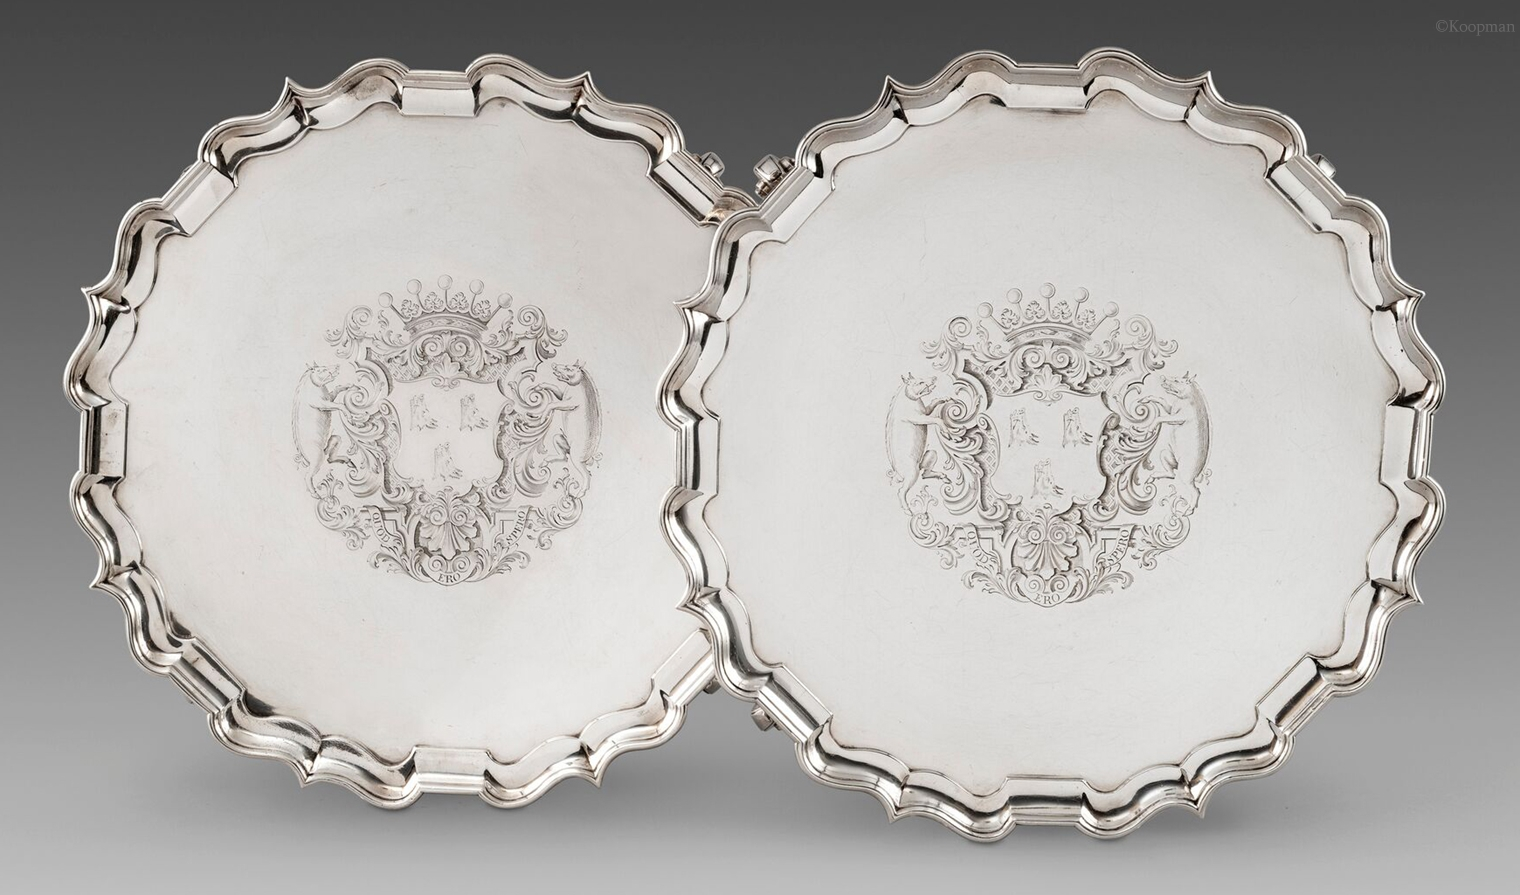 The Earl of Warrington's Salvers